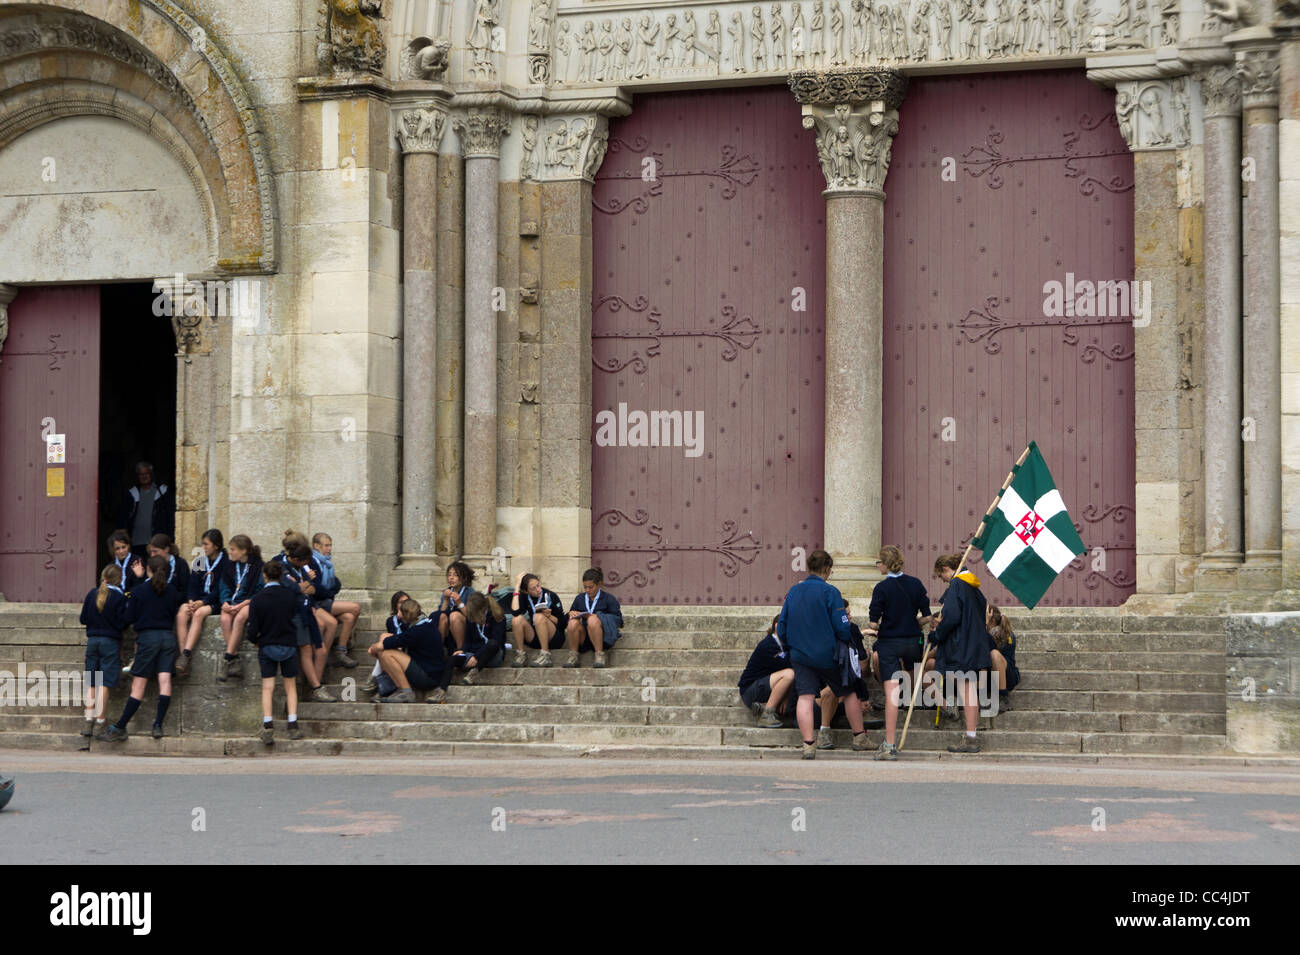 French girl guides outside Vézelay Abbey (Basilique Sainte-Marie-Madeleine), Burgundy, France. Stock Photo